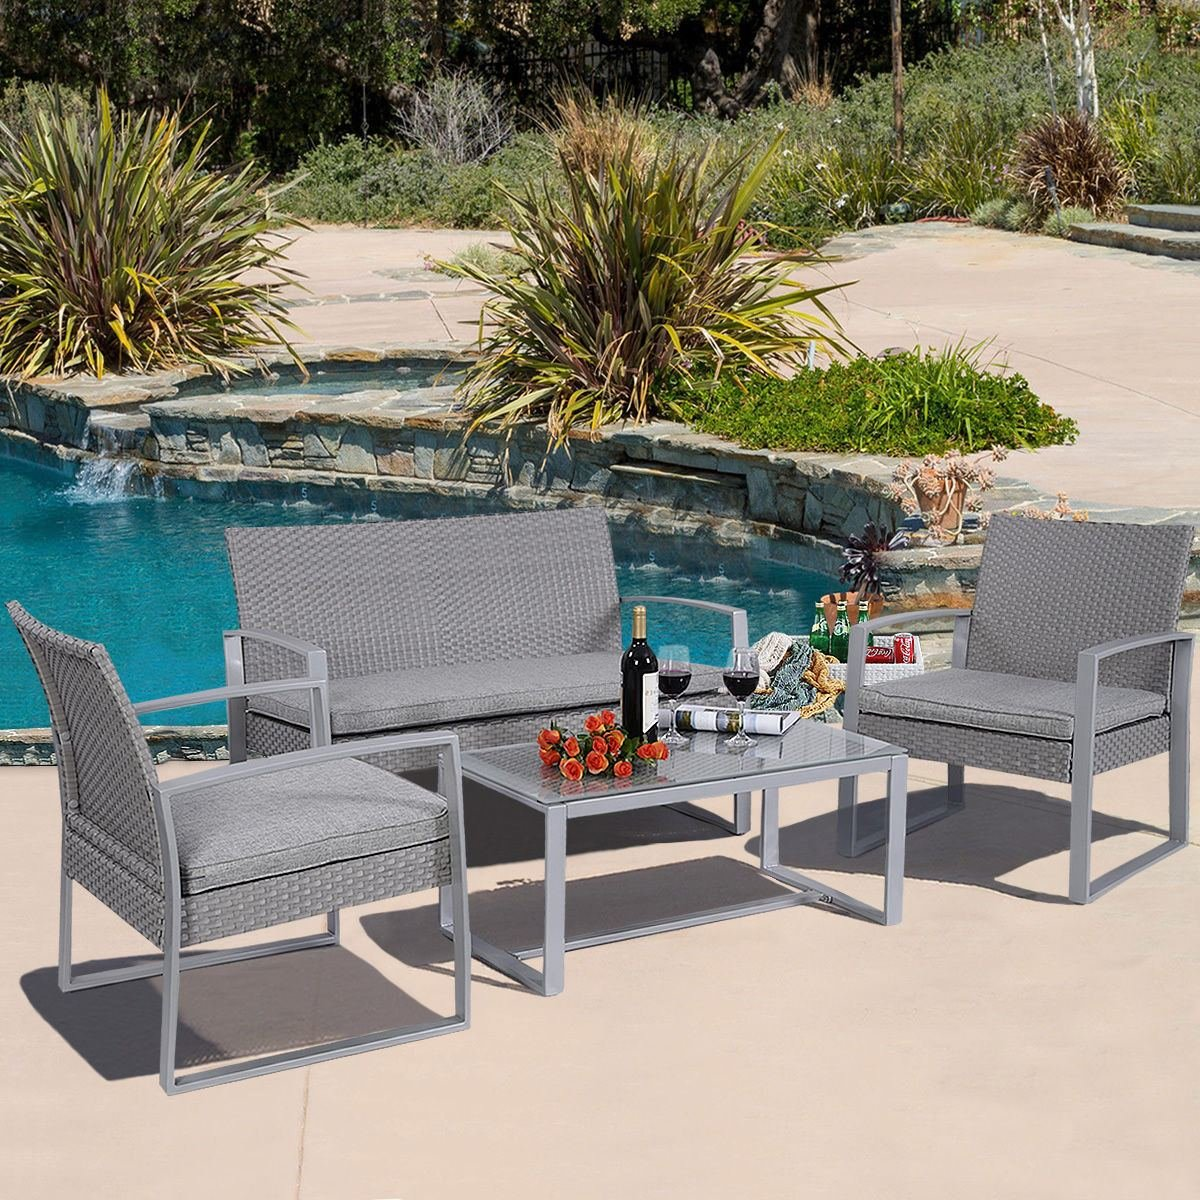 to wicket place buy patio rattan furniture wicker best reviews